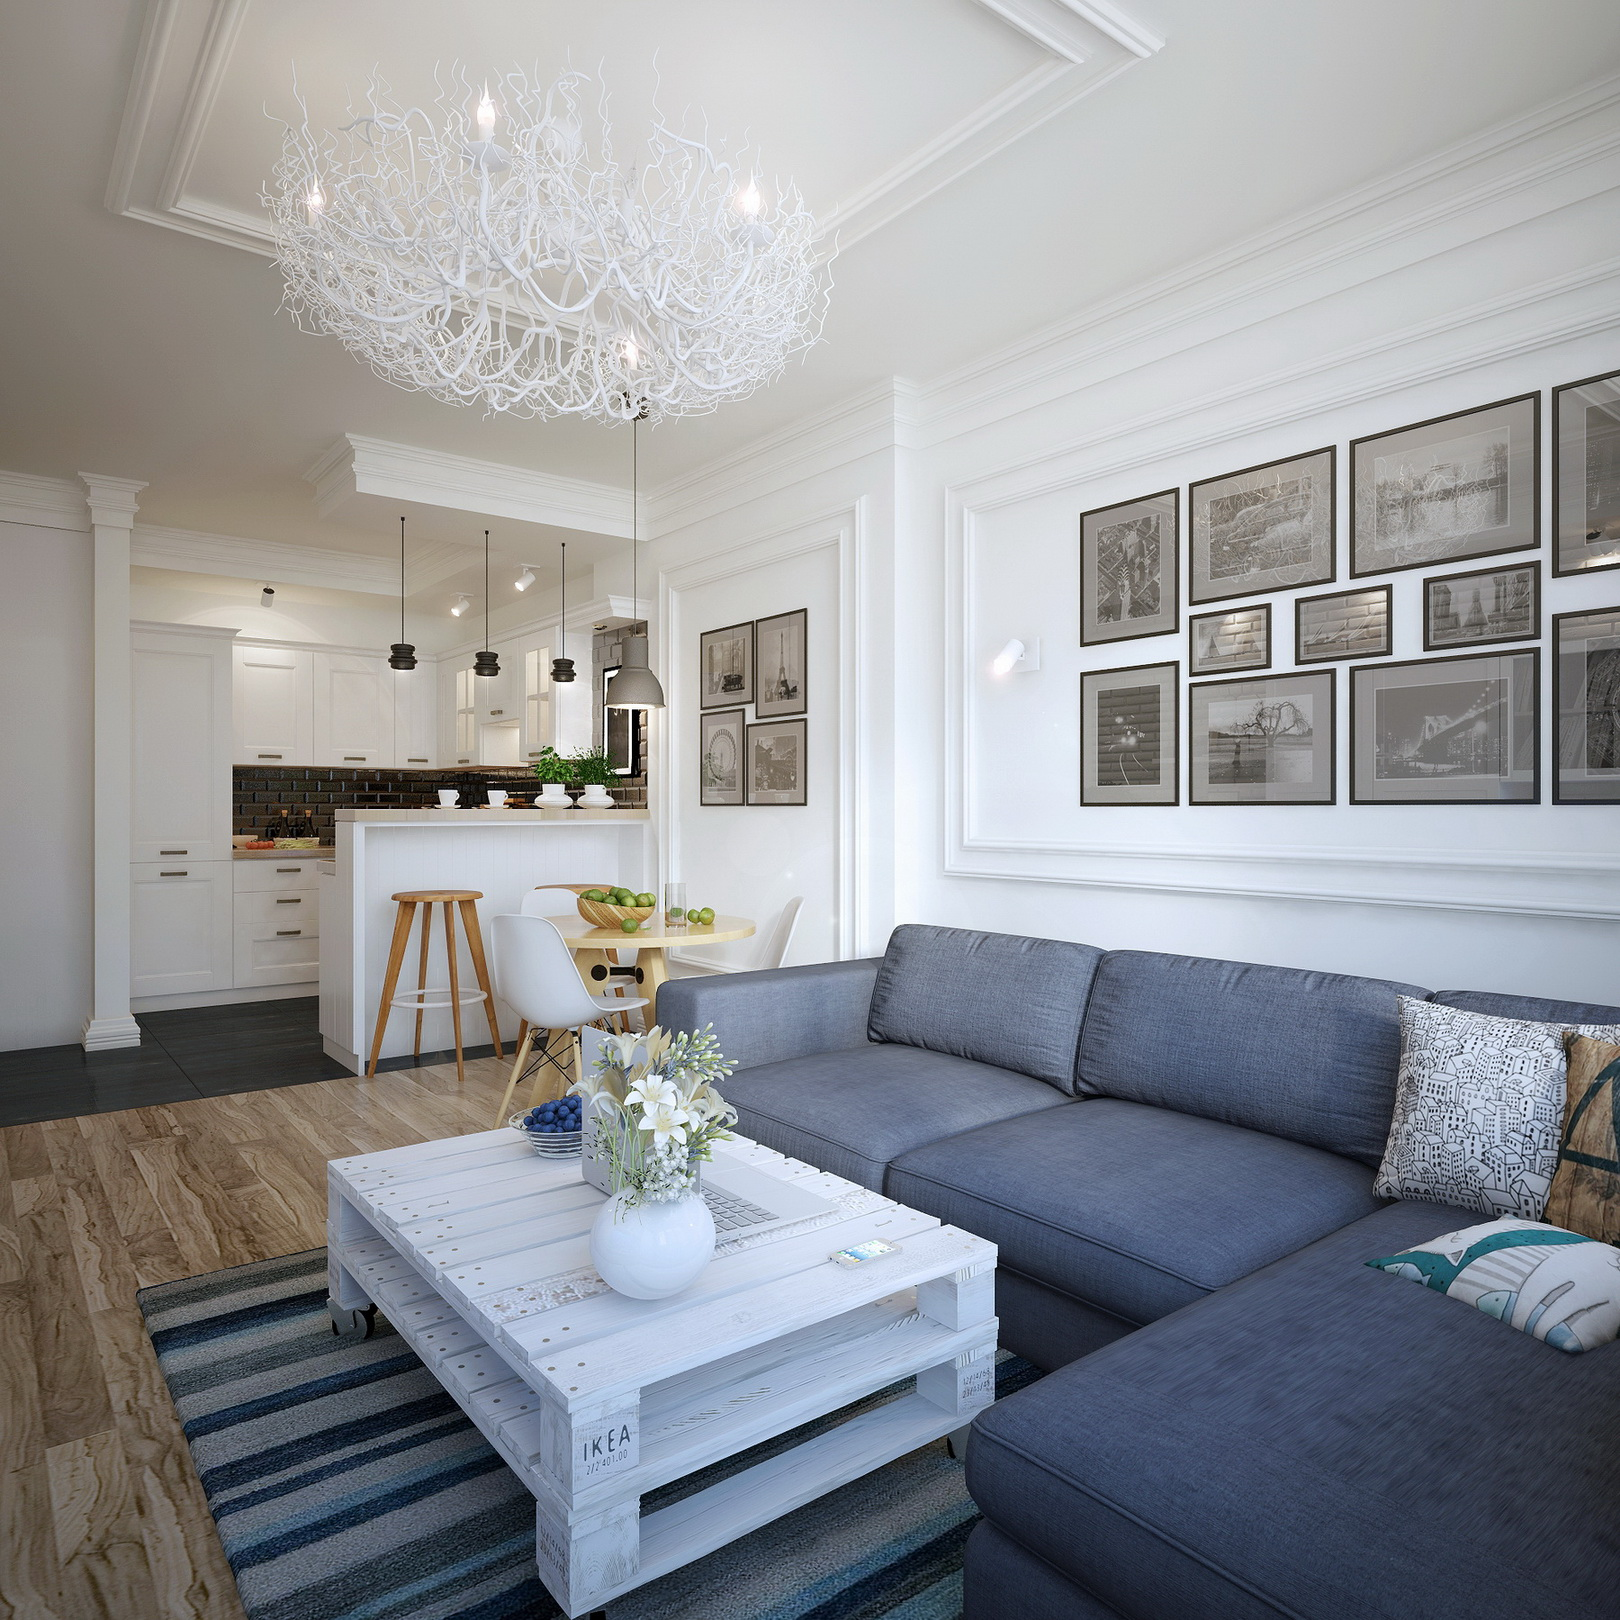 Visualizations Of Modern Apartments That Inspire: Apartment In Ukraine [Visualized]